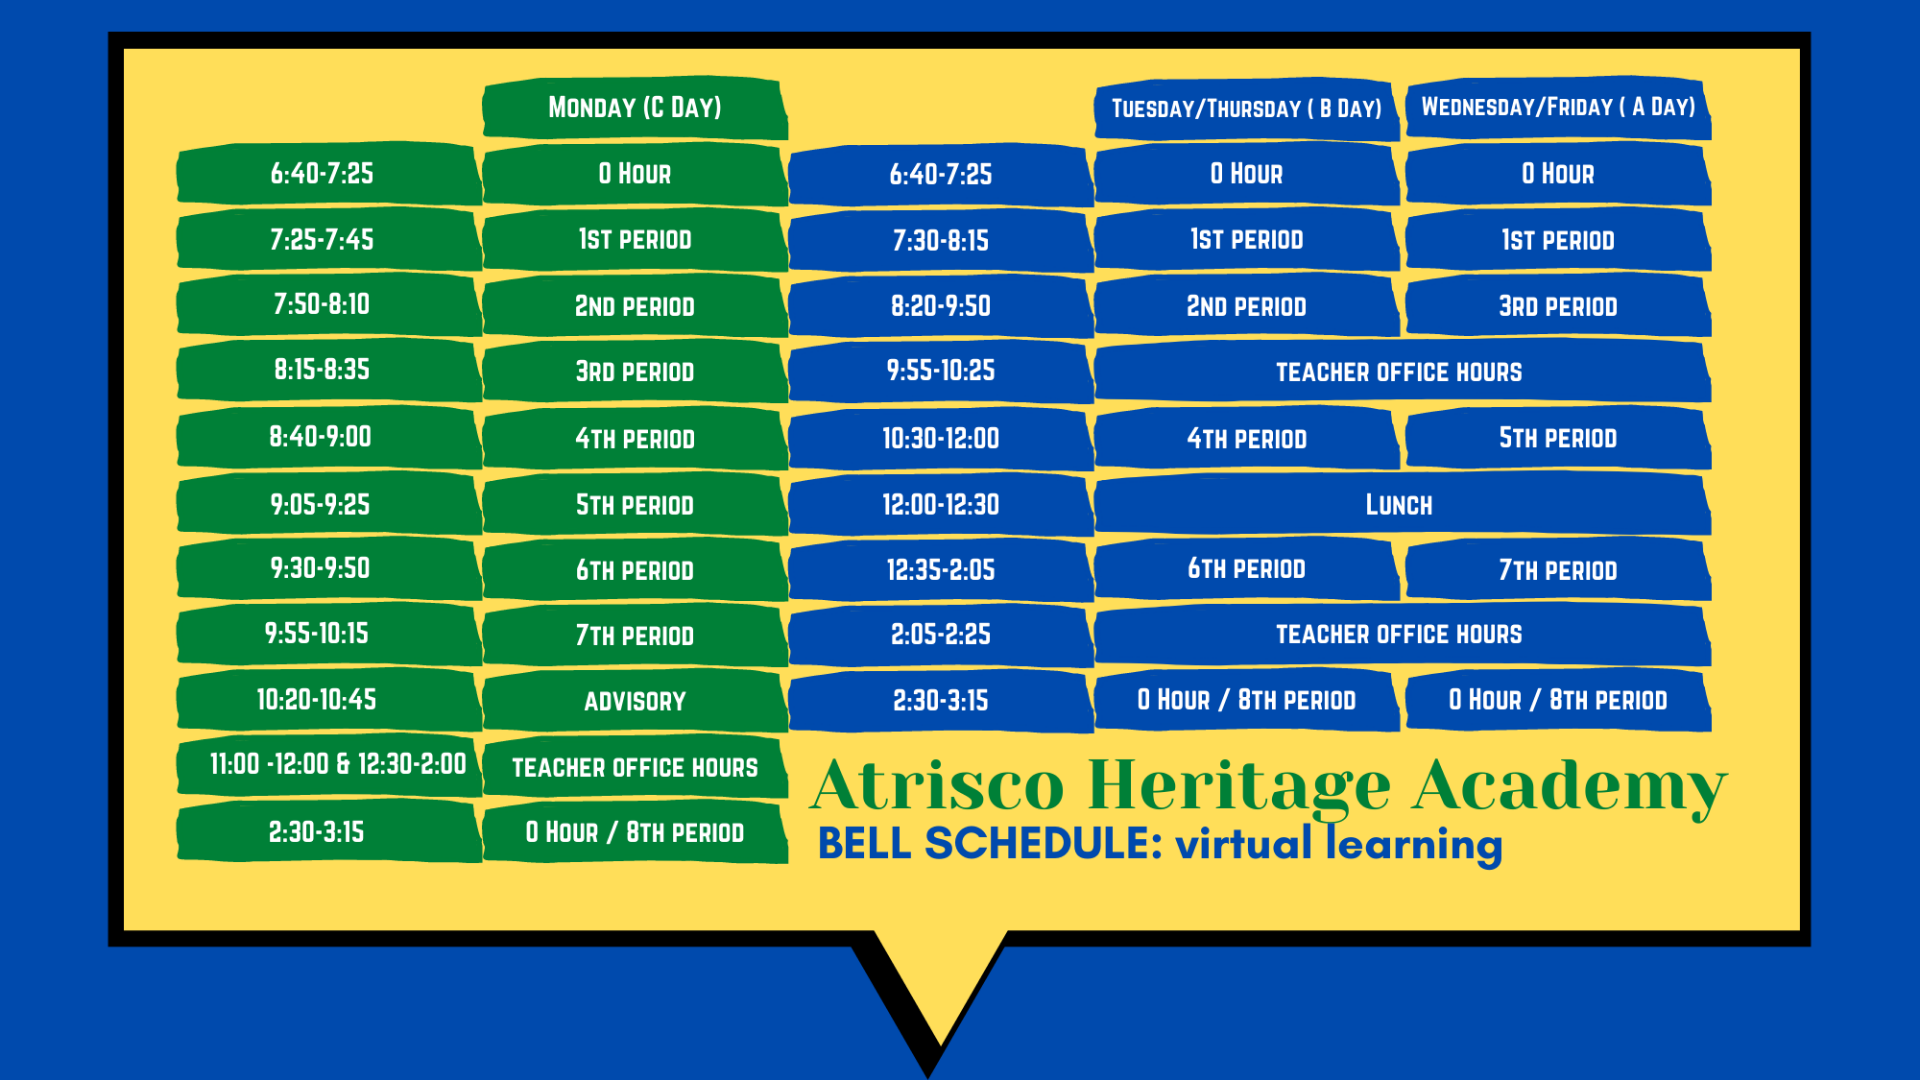 Bell Schedule for Virtual Learning